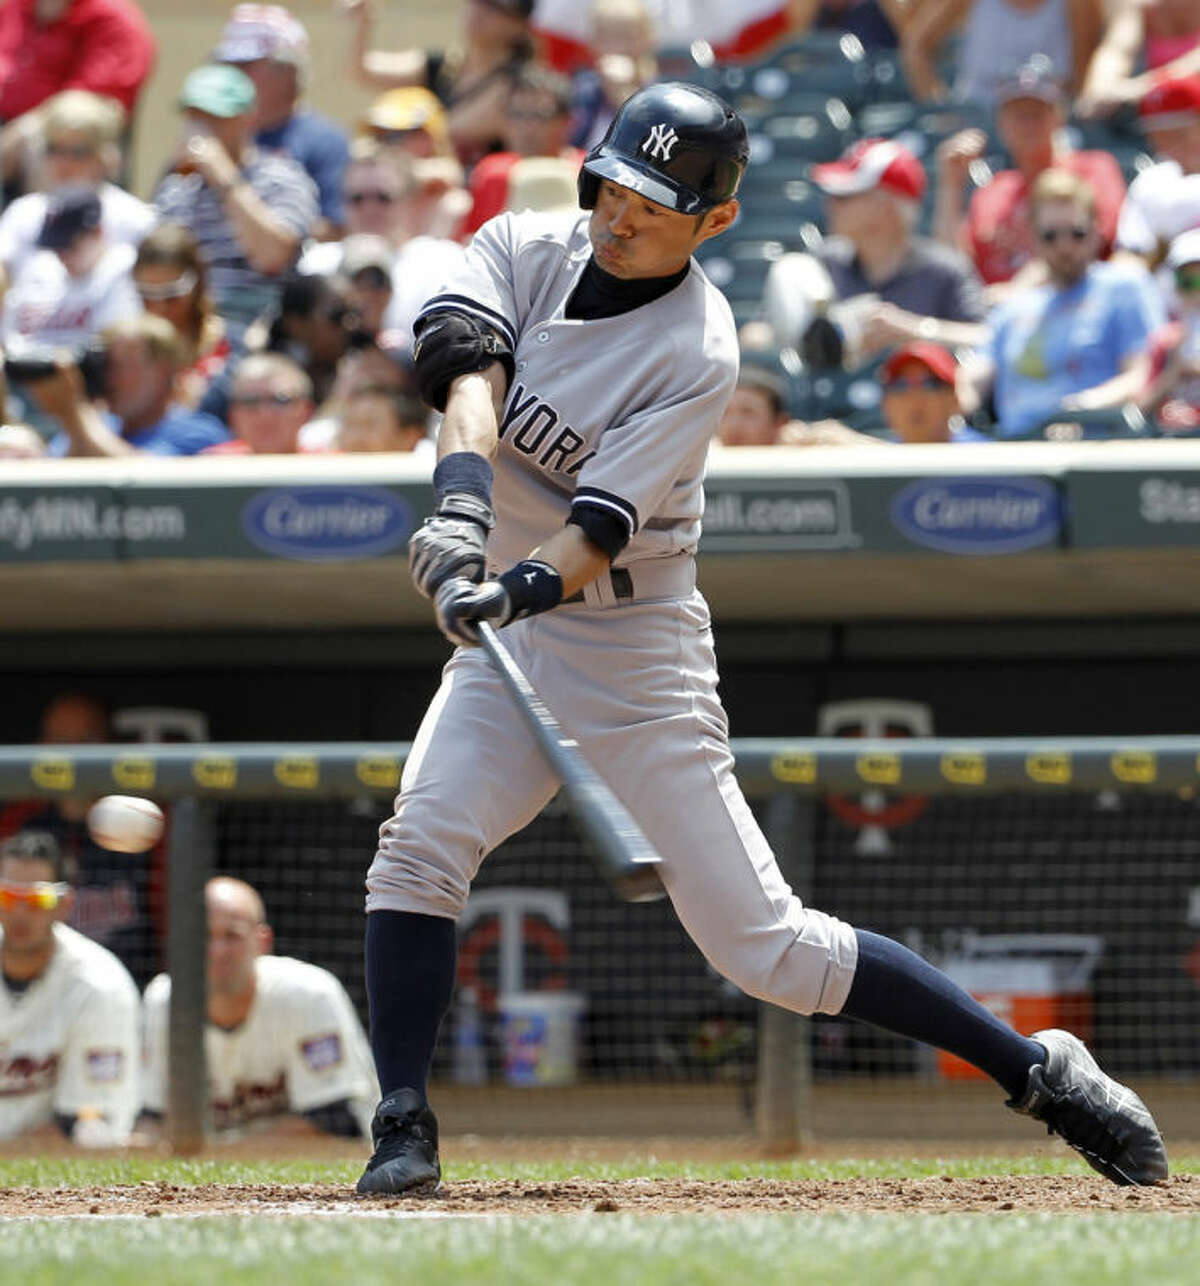 New York Yankees' Ichiro Suzuki, of Japan, hits a grounder off Minnesota Twins starting pitcher Yohan Pino during the fifth inning of a baseball game in Minneapolis, Saturday, July 5, 2014. Carlos Beltran was out at second. (AP Photo/Ann Heisenfelt)